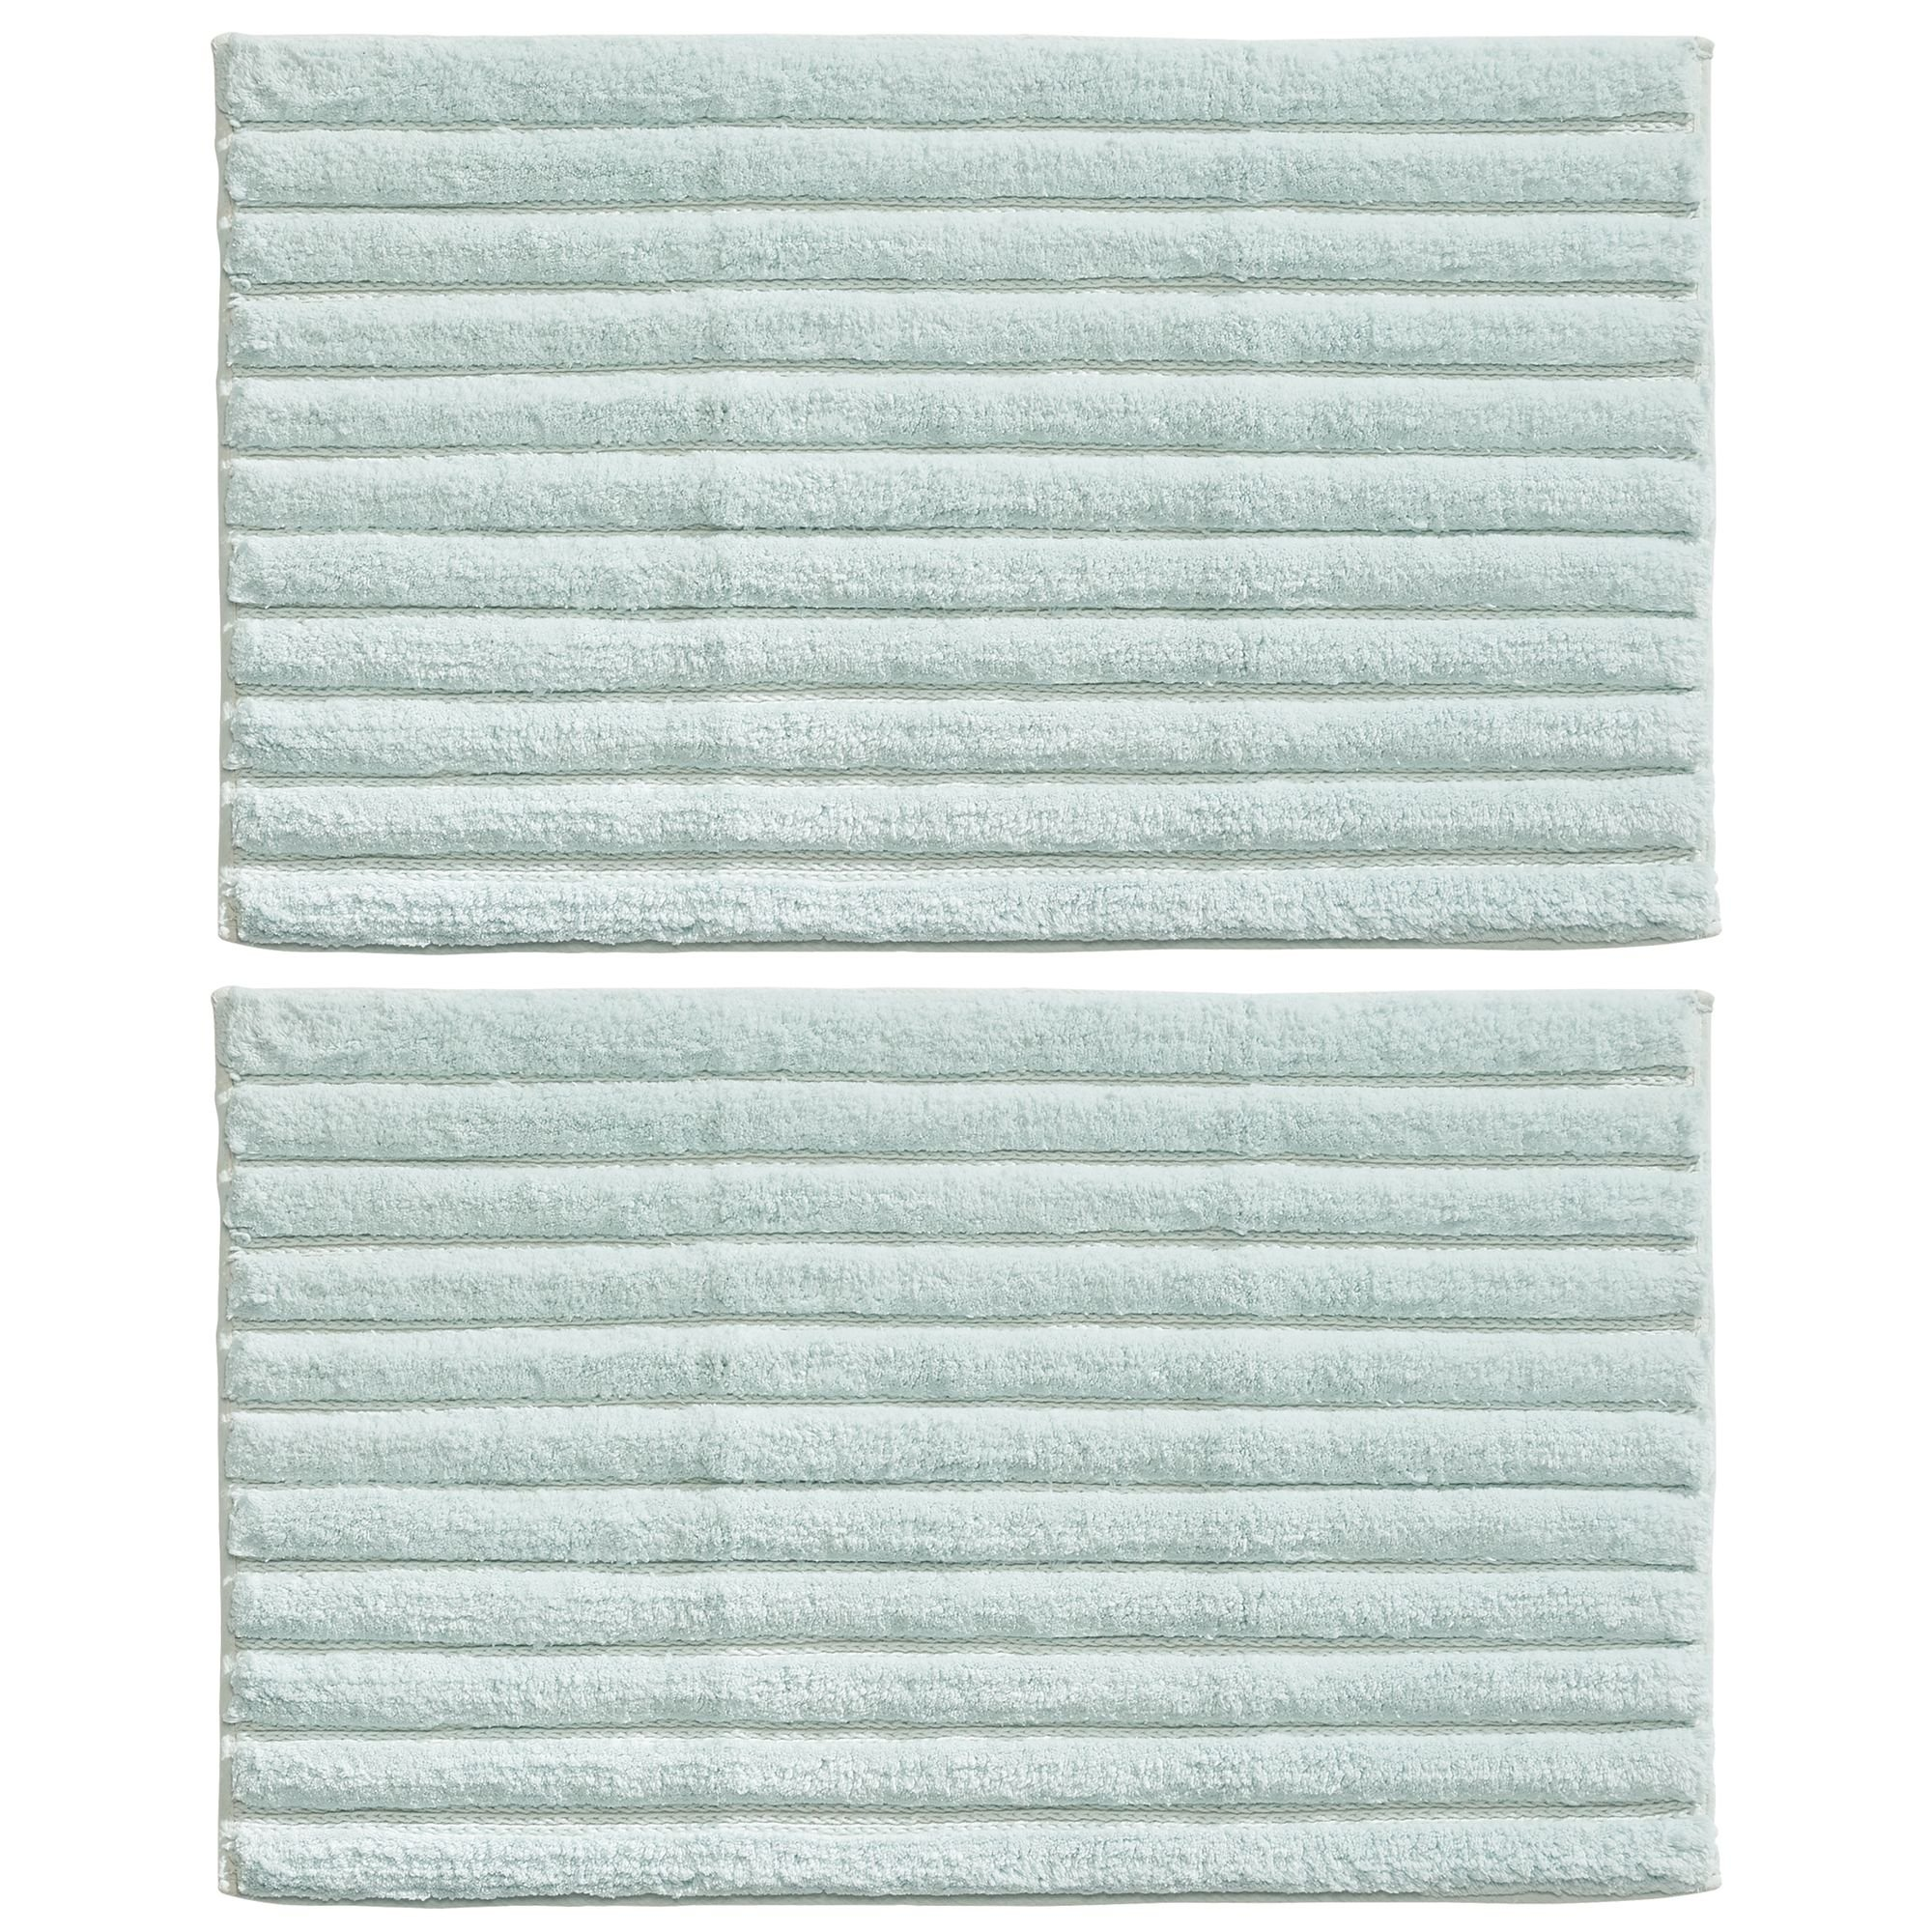 mDesign Soft 100% Cotton Luxury Hotel-Style Rectangular Spa Mat Rug, Plush Water Absorbent, Ribbed Design - for Bathroom Vanity, Bathtub/Shower, Machine Washable - 34'' x 21'' - Pack of 2, Water